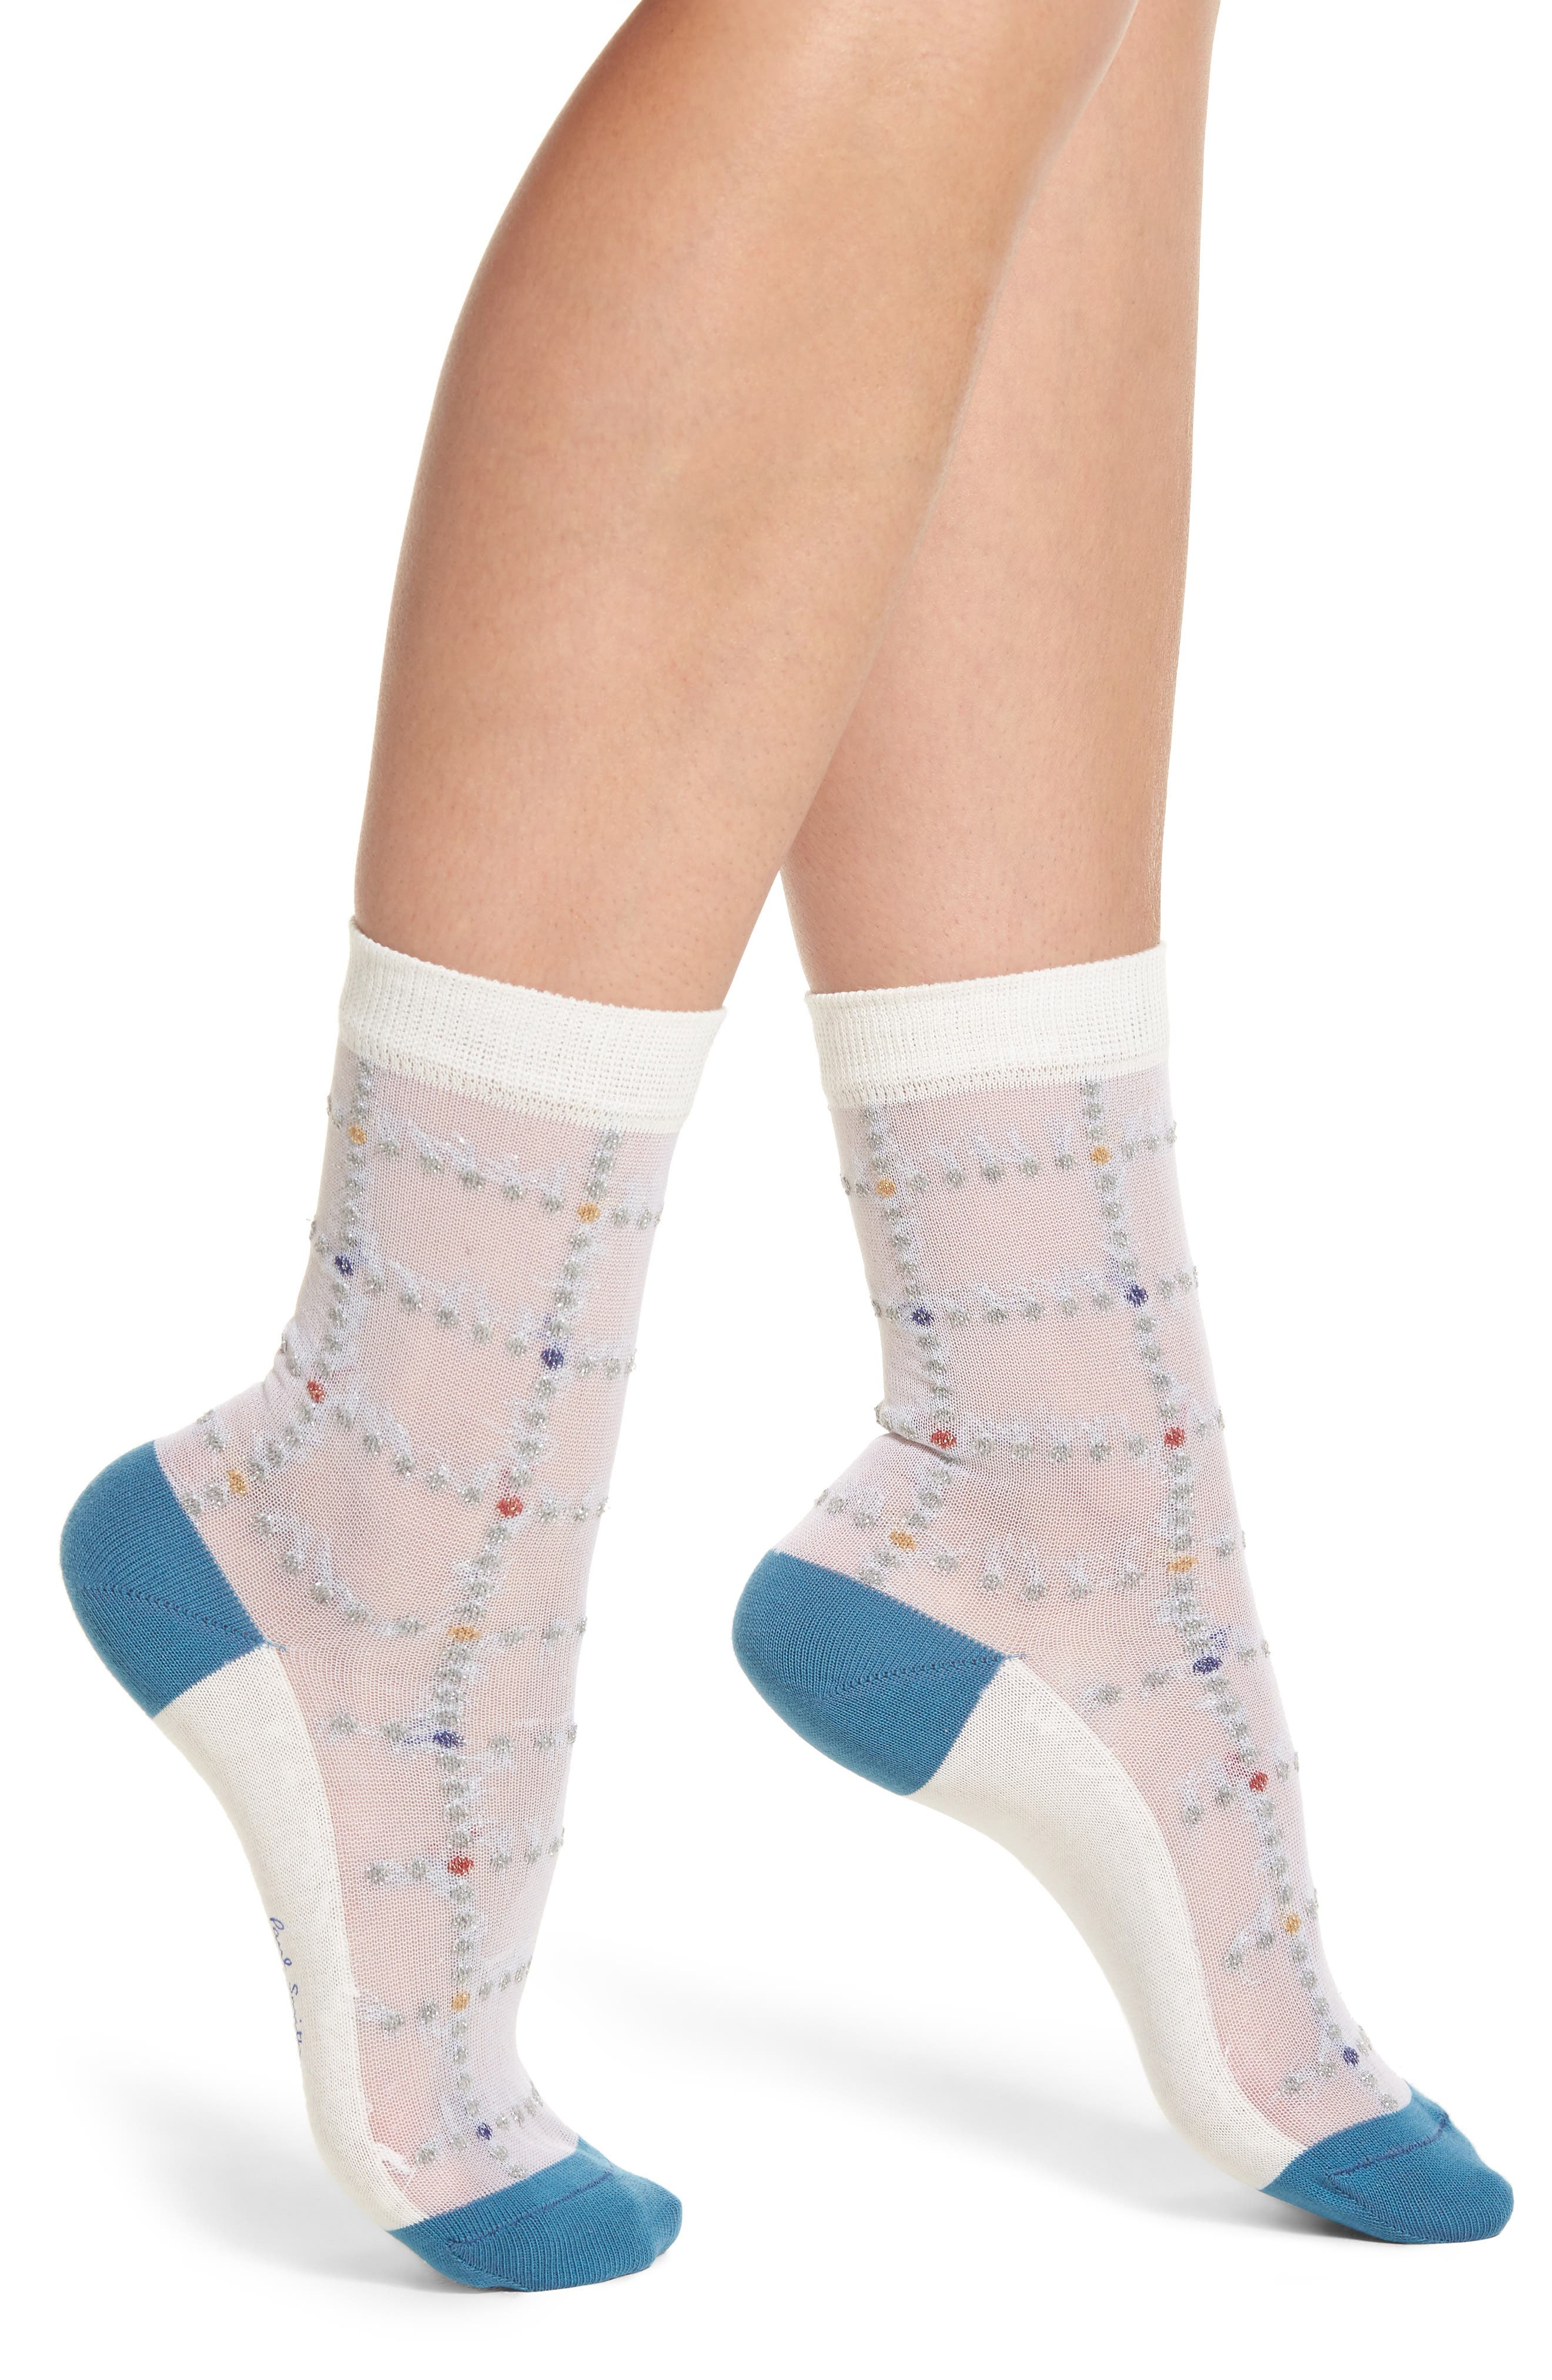 Erin Check Ankle Socks,                         Main,                         color,